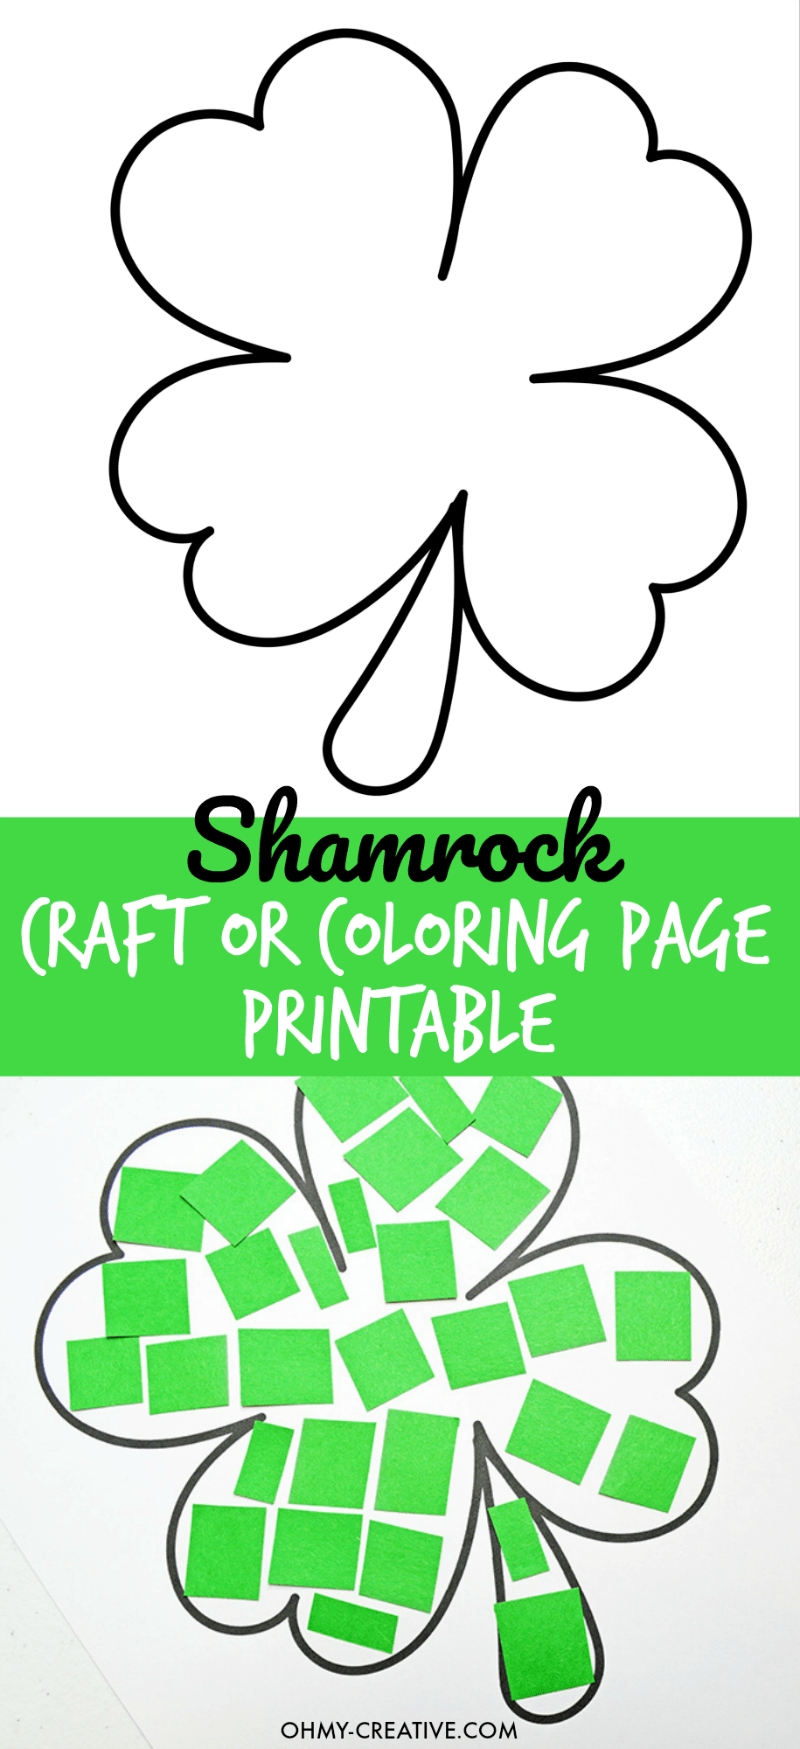 photo regarding Shamrock Template Printable Free identify Reduce And Paste Shamrock Template or Coloring Webpage - Oh My